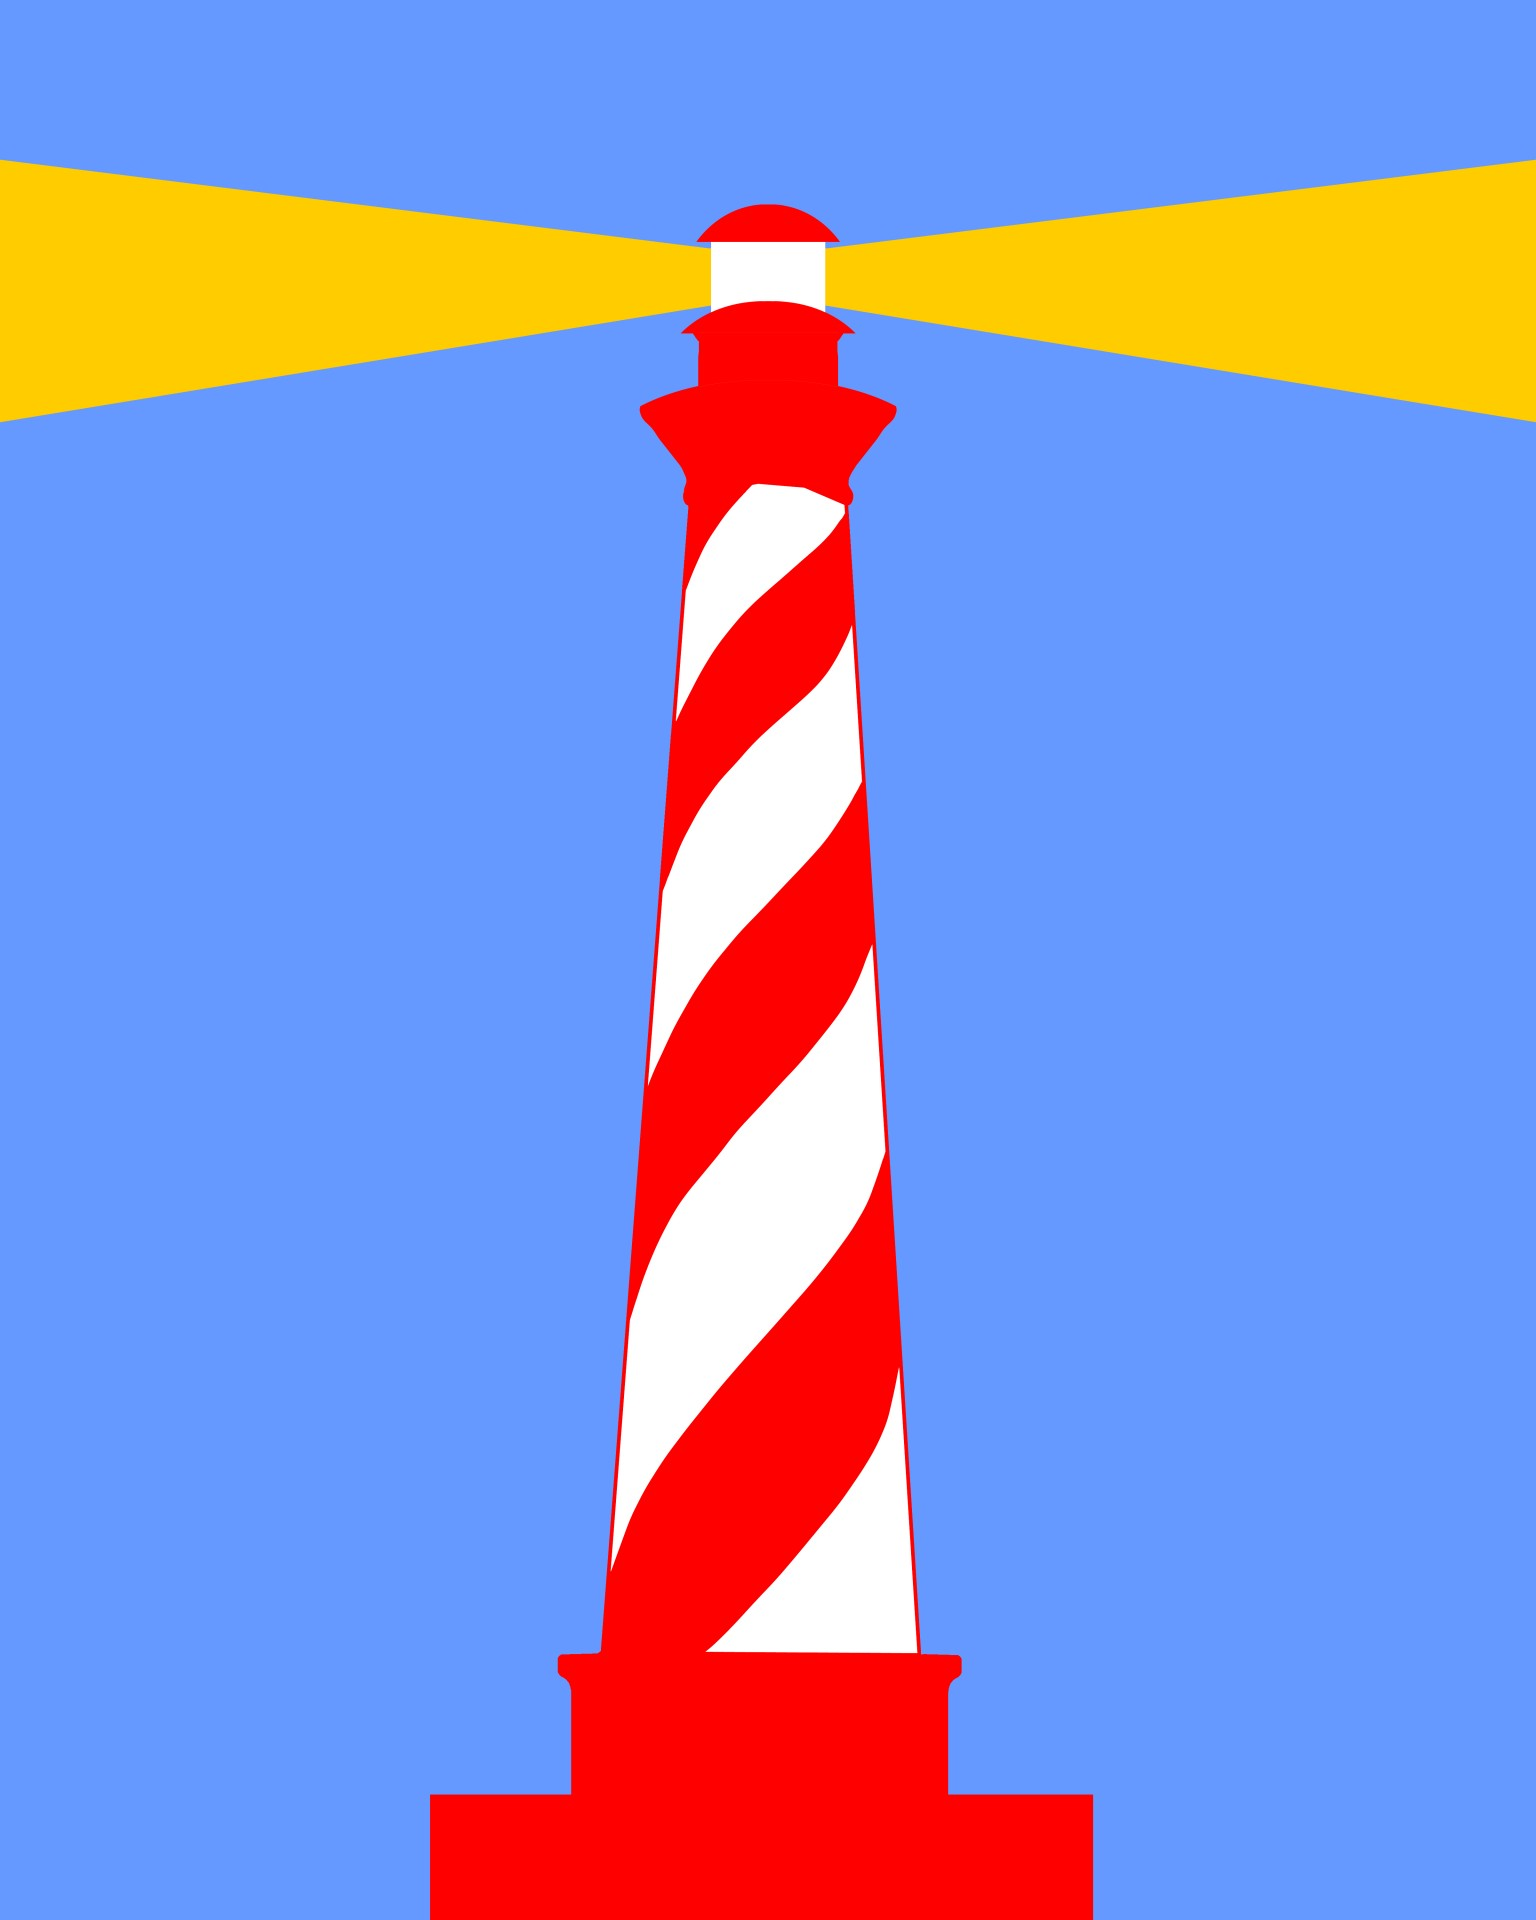 Lighthouse clipart red and blue Public Lighthouse striped striped Red